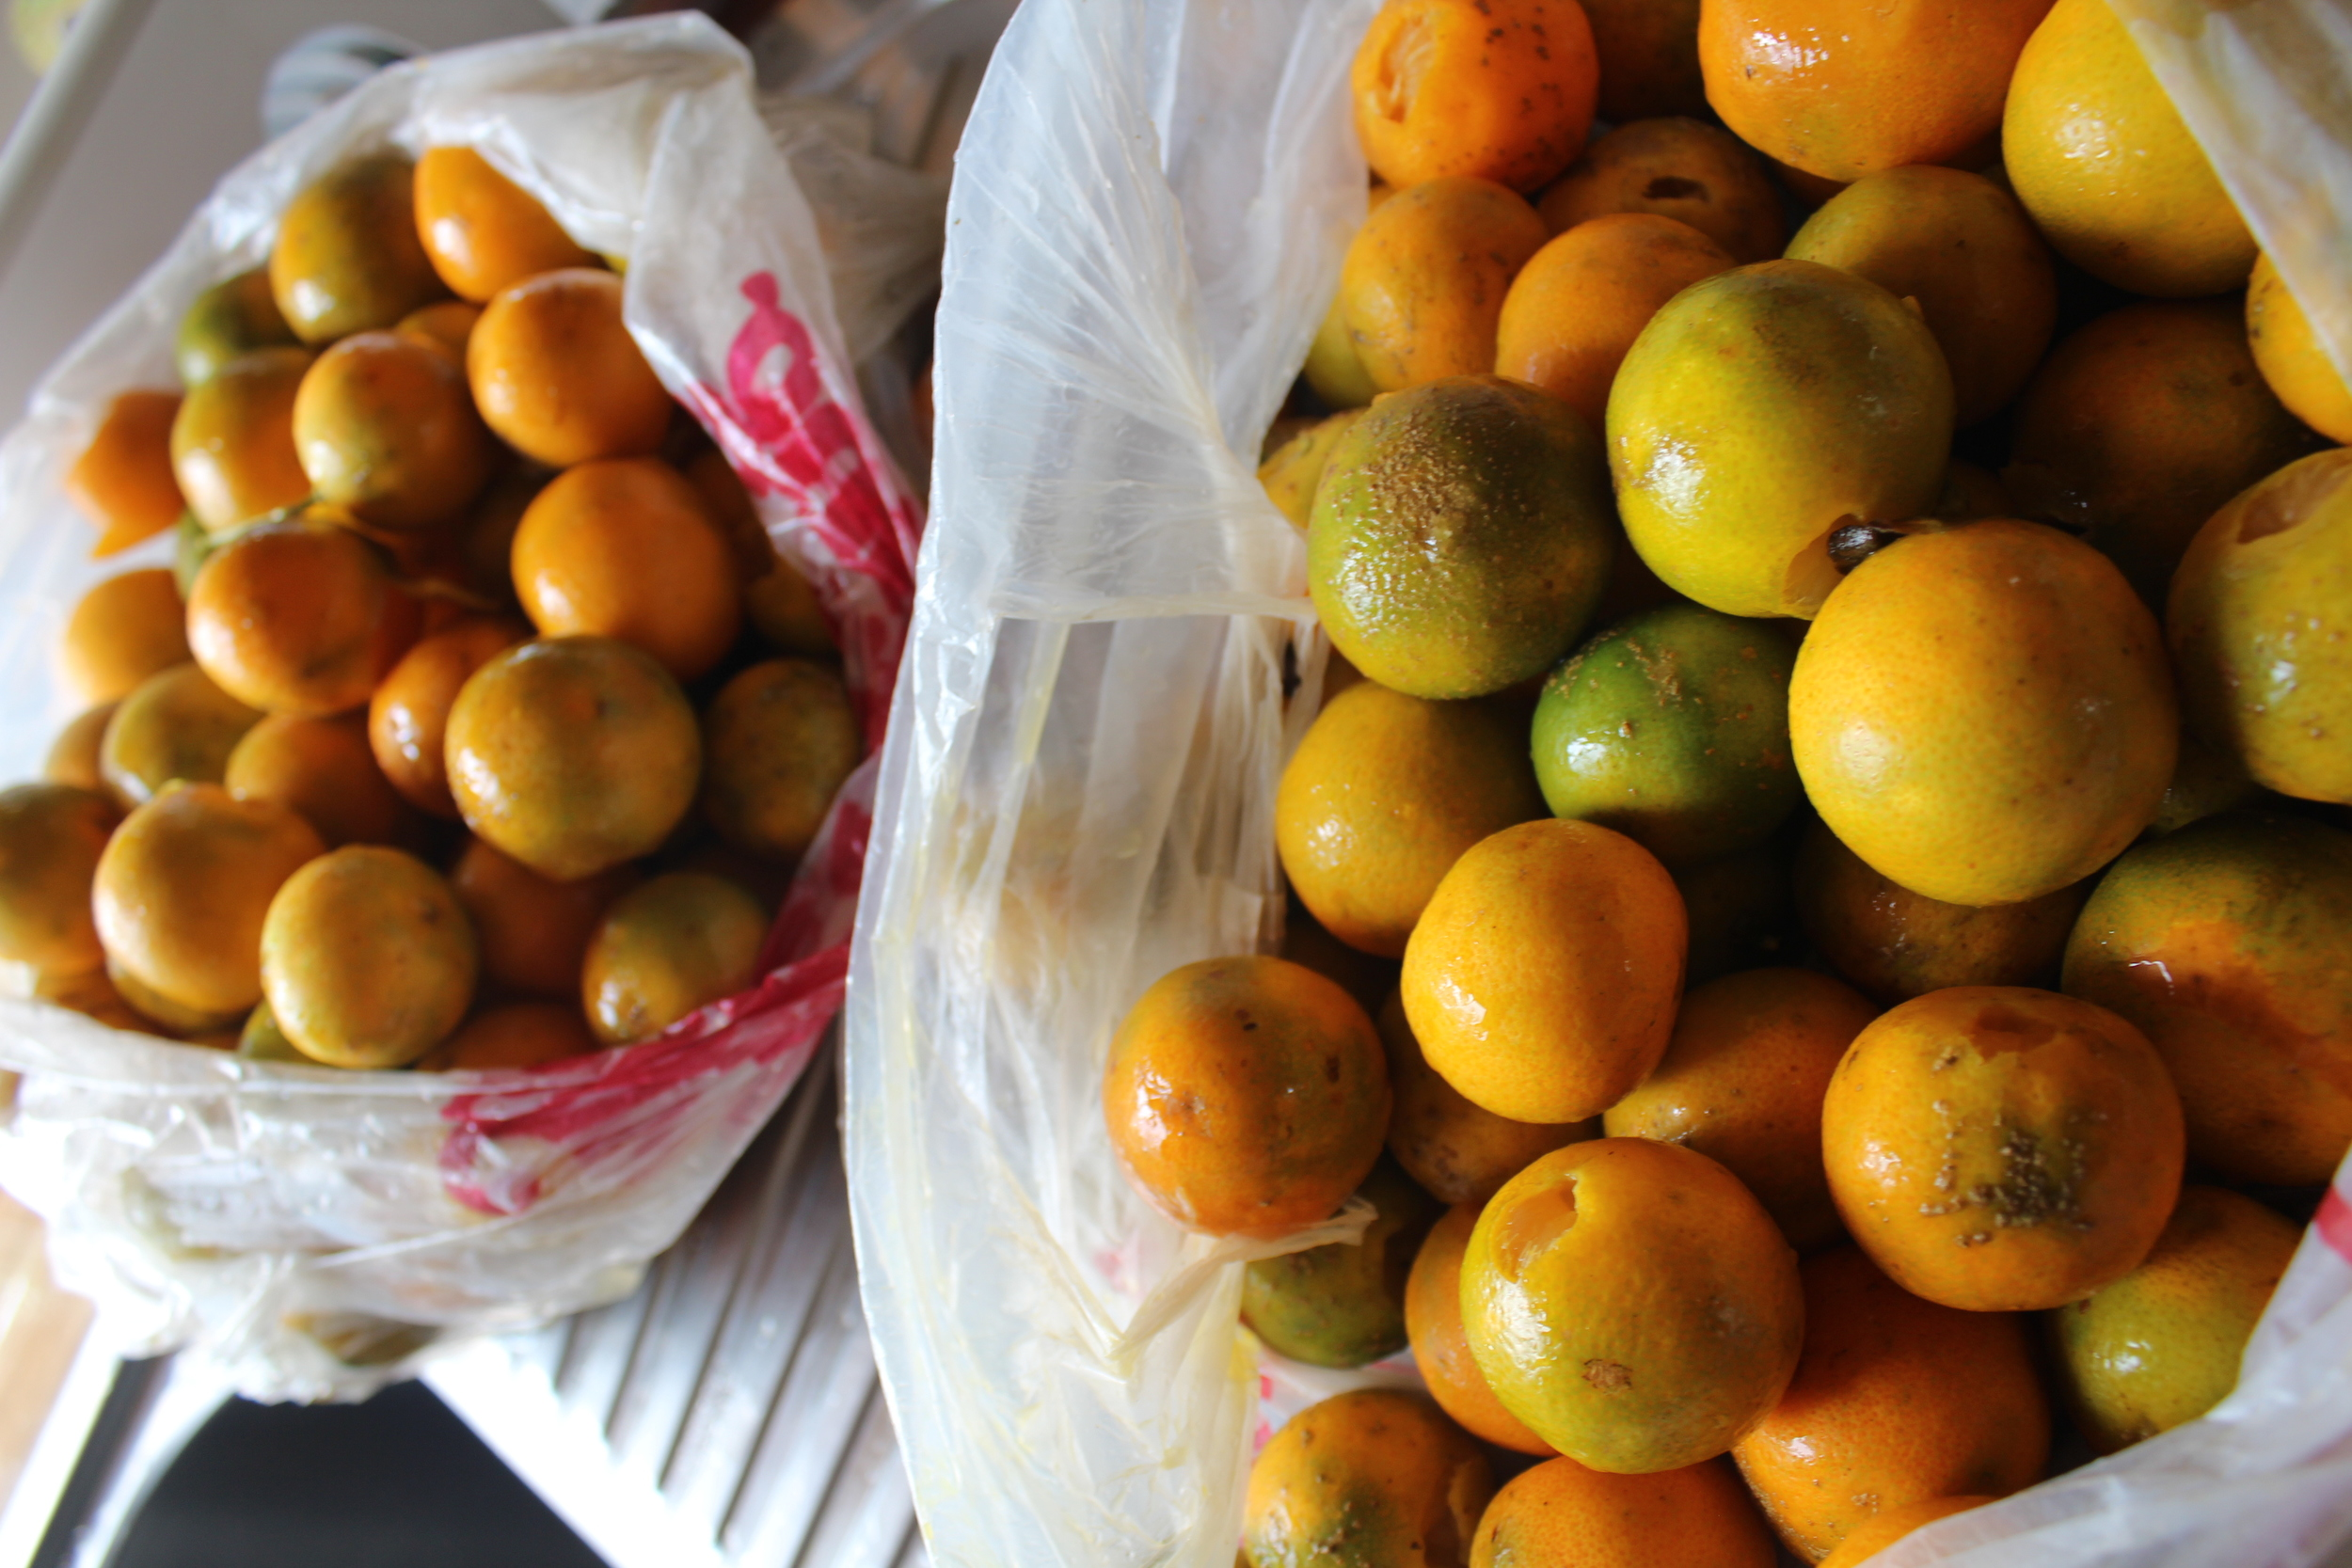 Bags of kumquats